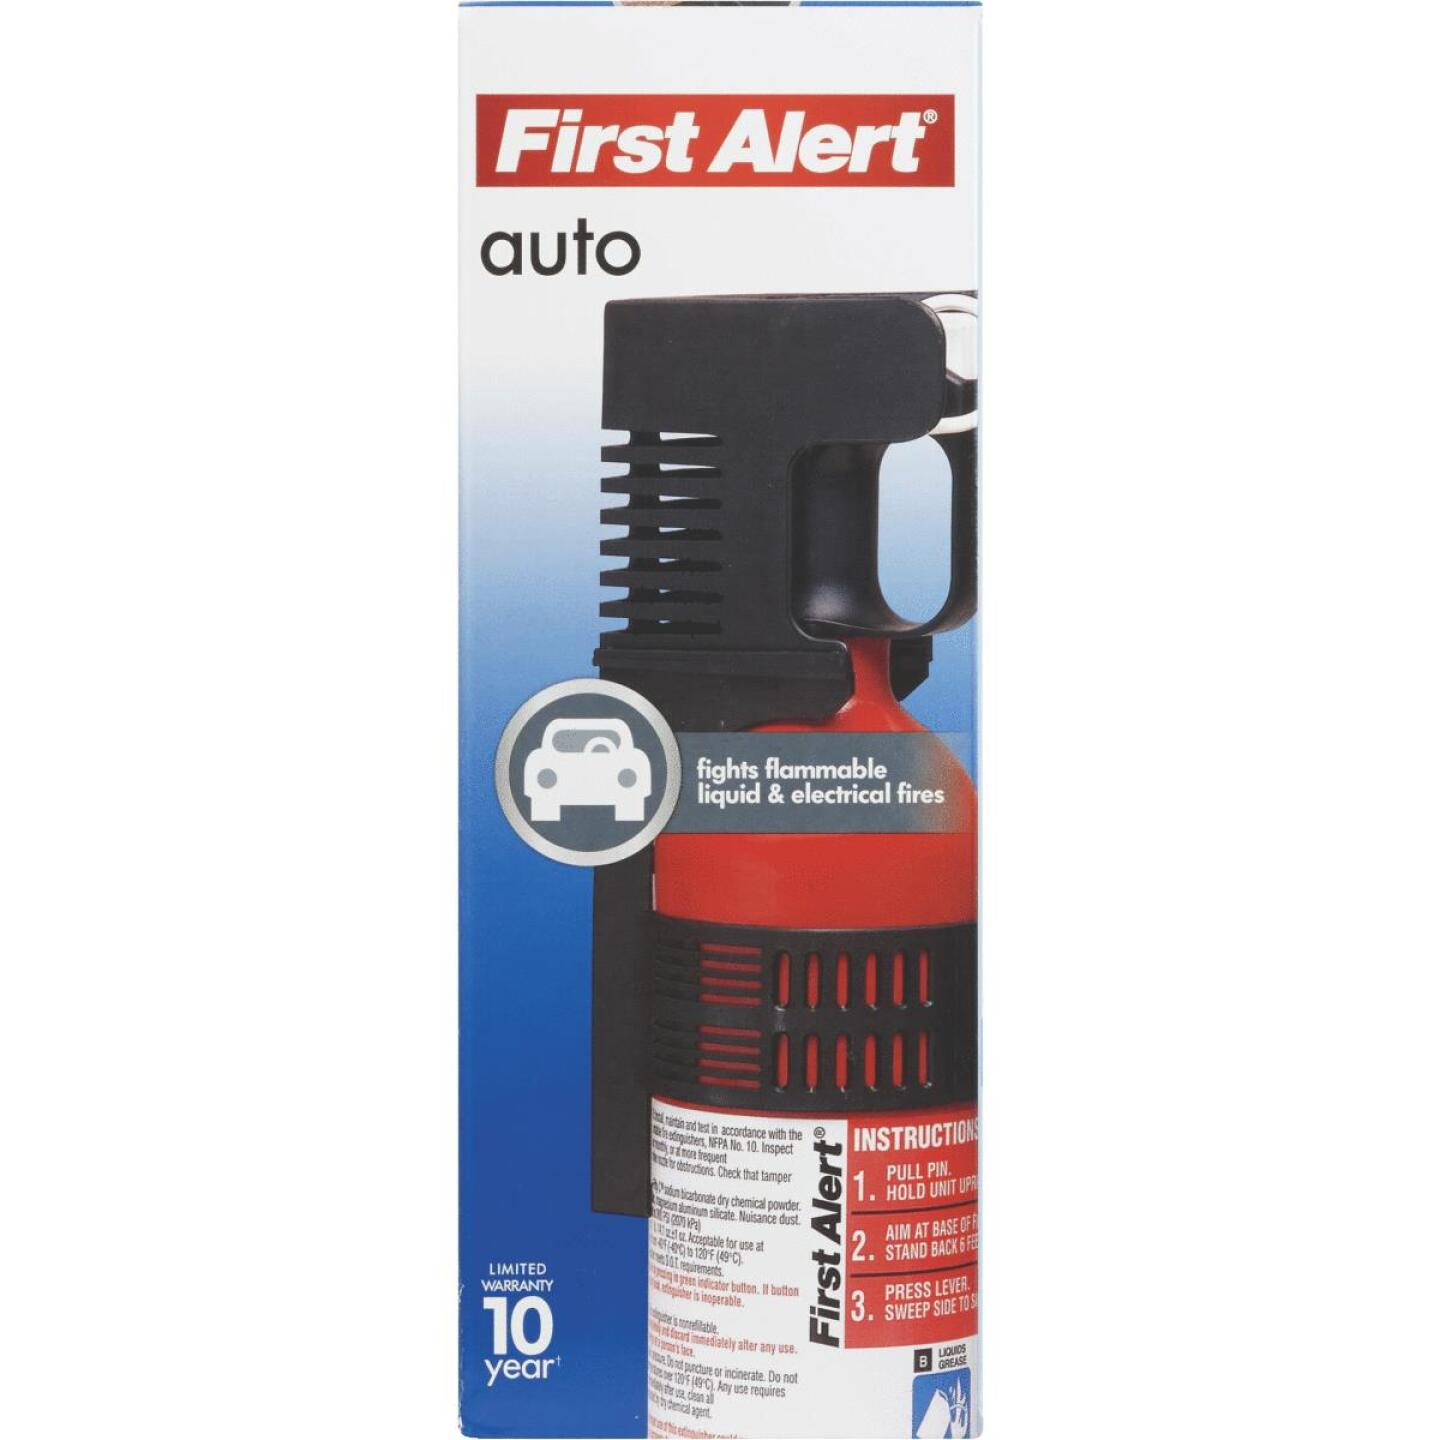 First Alert 5-B:C Auto Fire Extinguisher Image 2